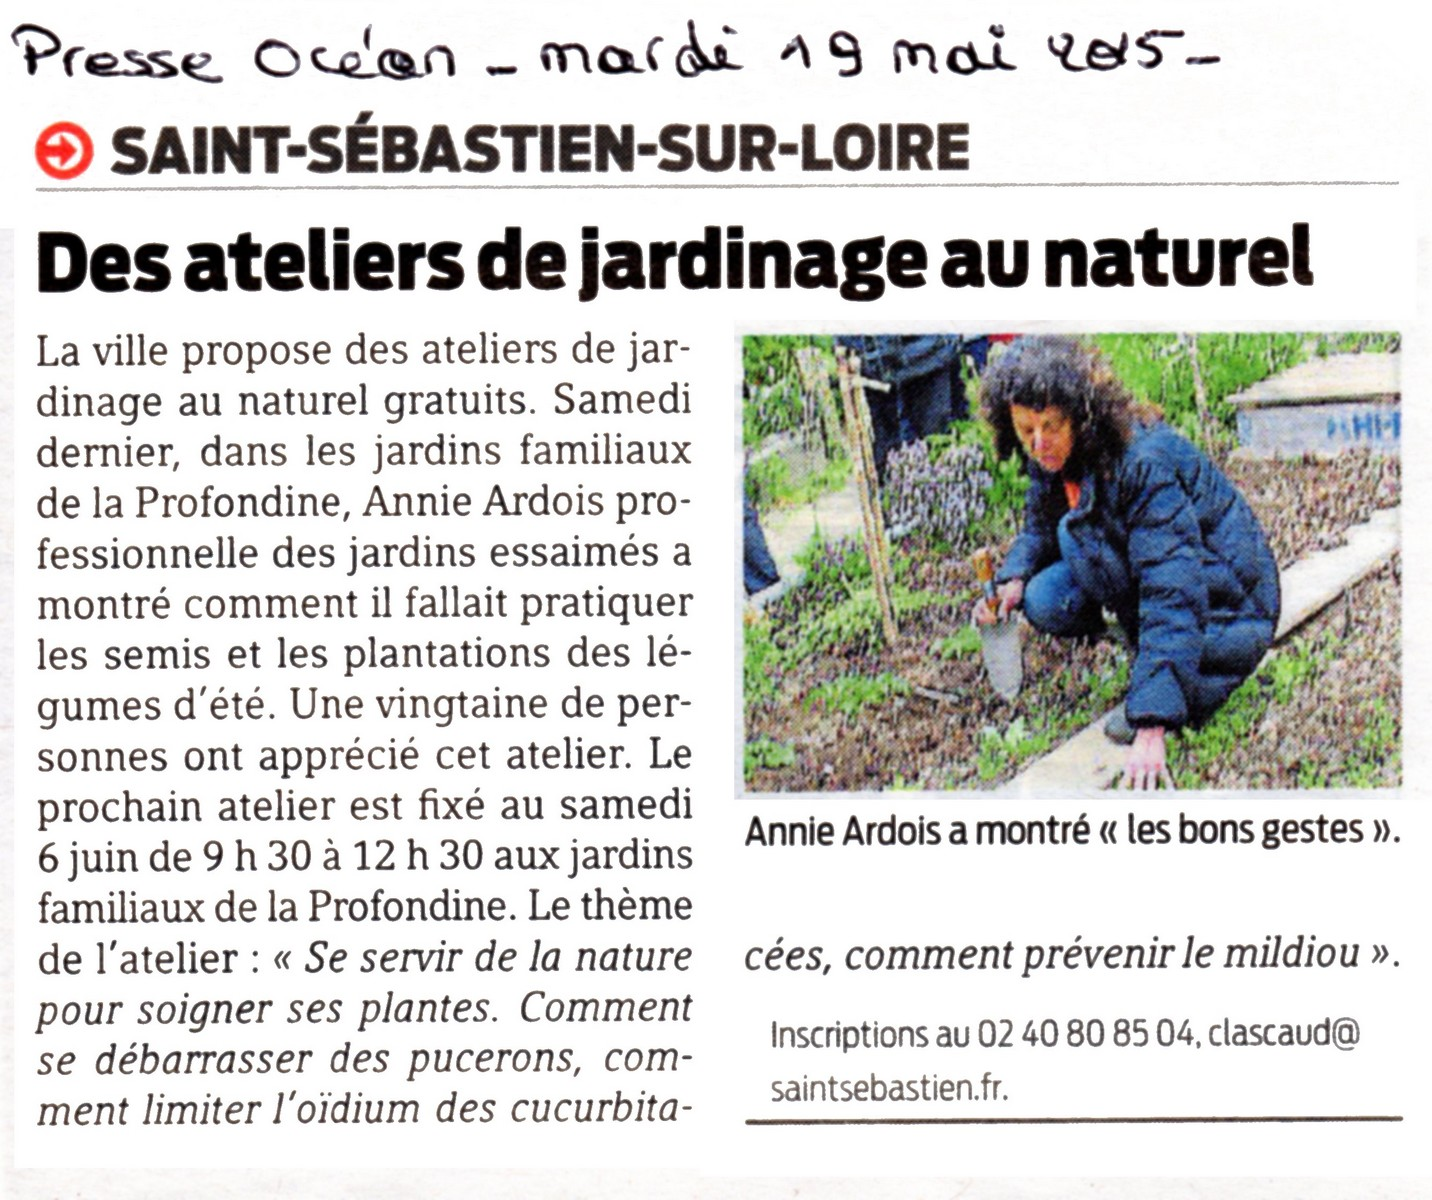 Article presse oc an 19 mai 2015 les potagers essaim s for Articles de jardinage en ligne